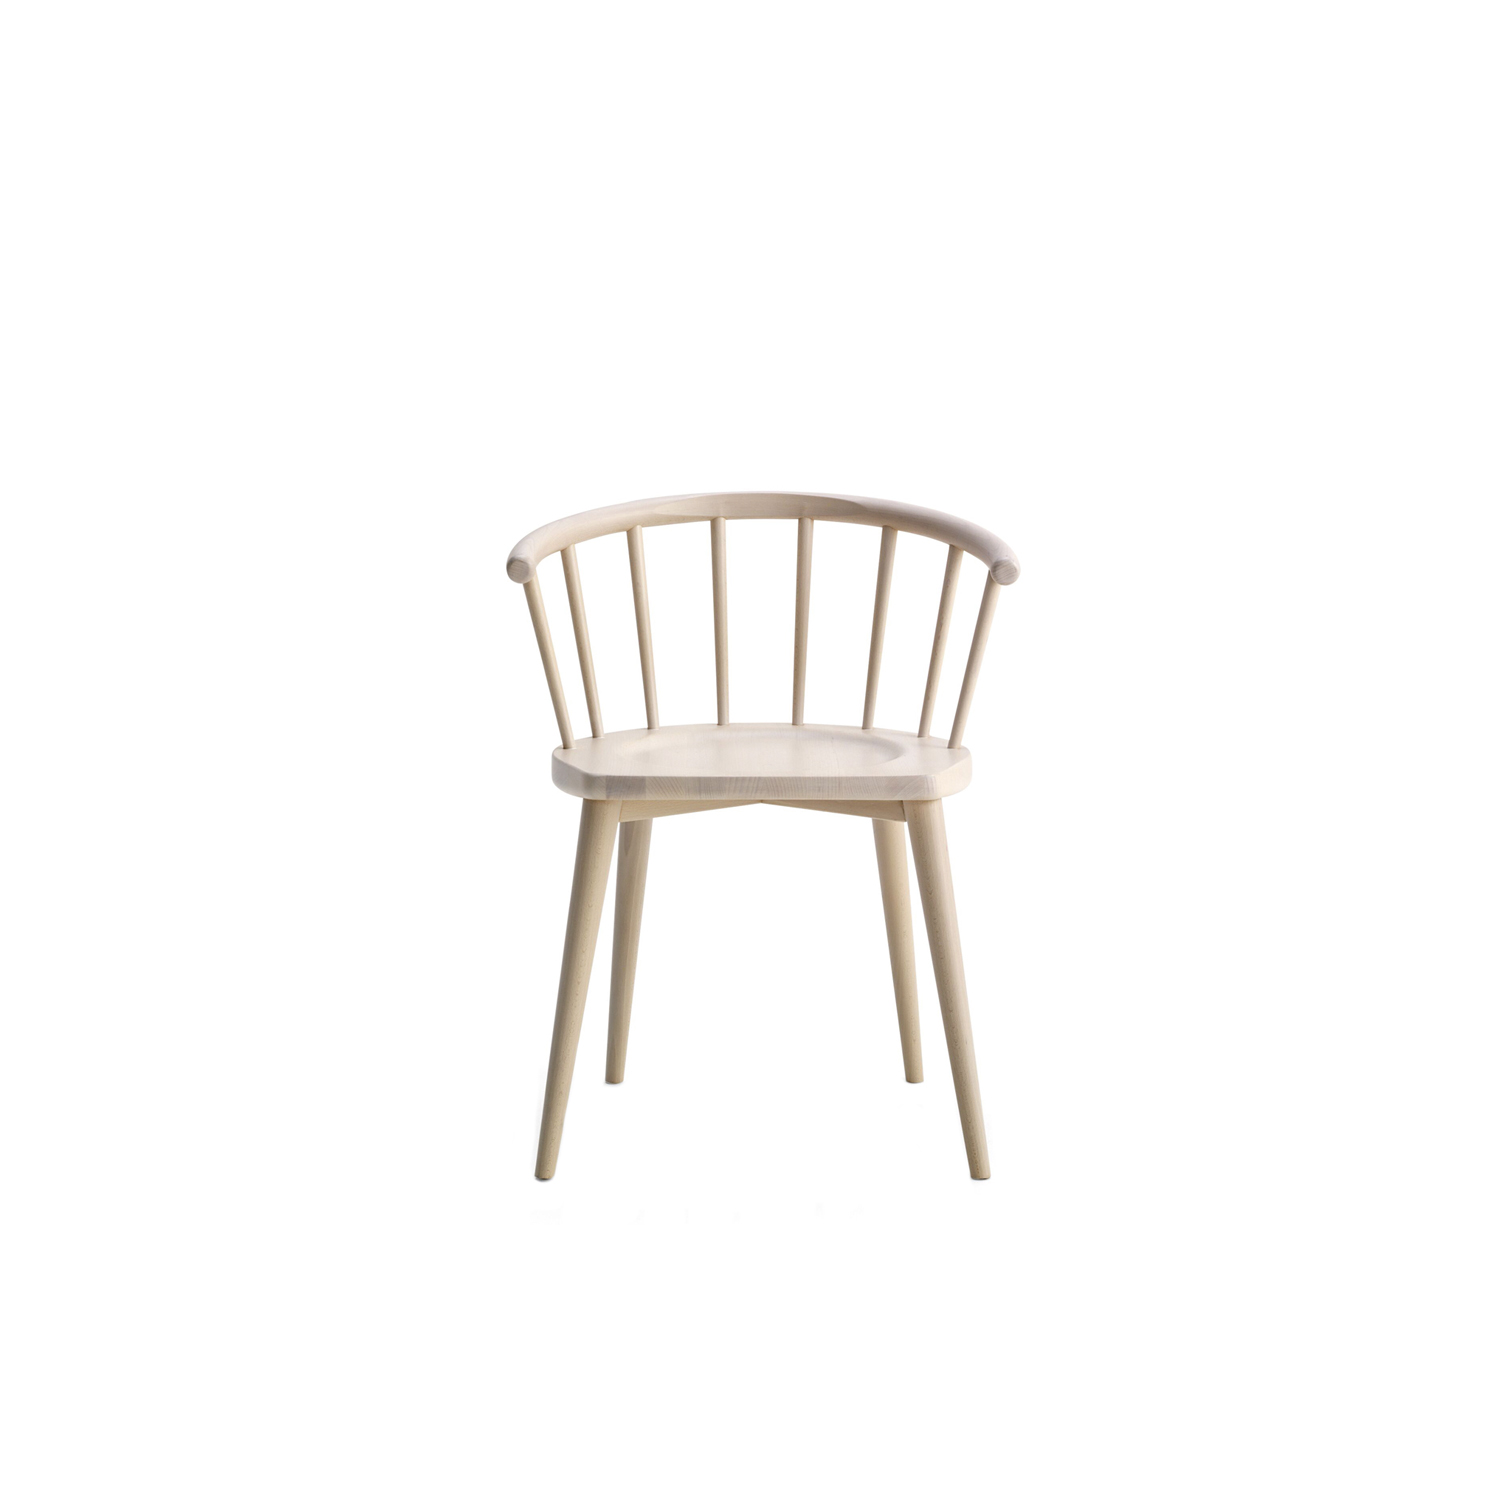 W. Chair - Chairs and armchairs in stained or lacquered beechwood, also in the rocking chair version. The reinterpretation of a classic. The re-design of a type of chair amongst the most well-known in design history: the Windsor Chair. The natural wood or lacquered is shaped with attention to the thicknesses, the angles, the relationship between the components, in order to achieve a balanced and streamlined design. Chairs, lounge chair, stool and rocking chairs are also available with cushions. Please enquire for further information.  | Matter of Stuff